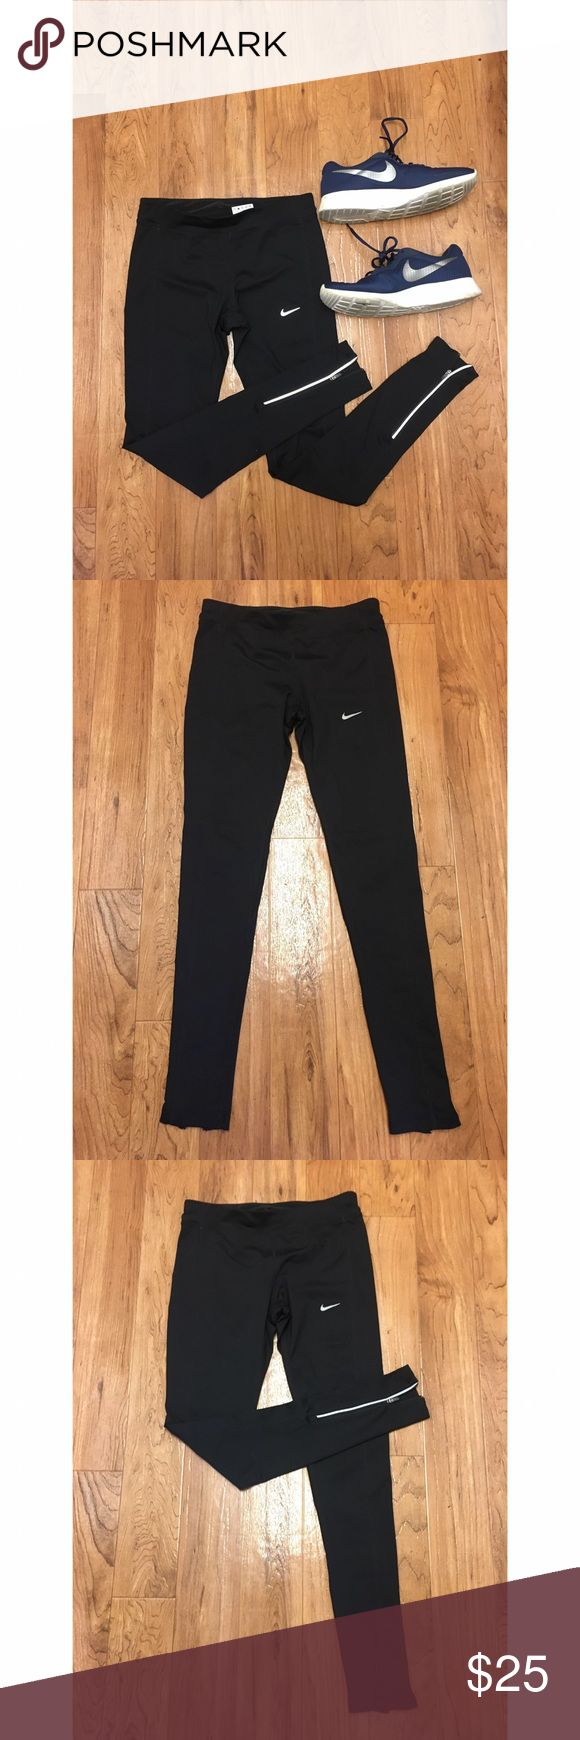 Nike running pants size small Size small black Nike running pants with zippers at the ankles. No flaws. Back pocket above butt. Extremely comfortable! Worn only a couple times. Has a Drawstring as well! Nike Pants Leggings